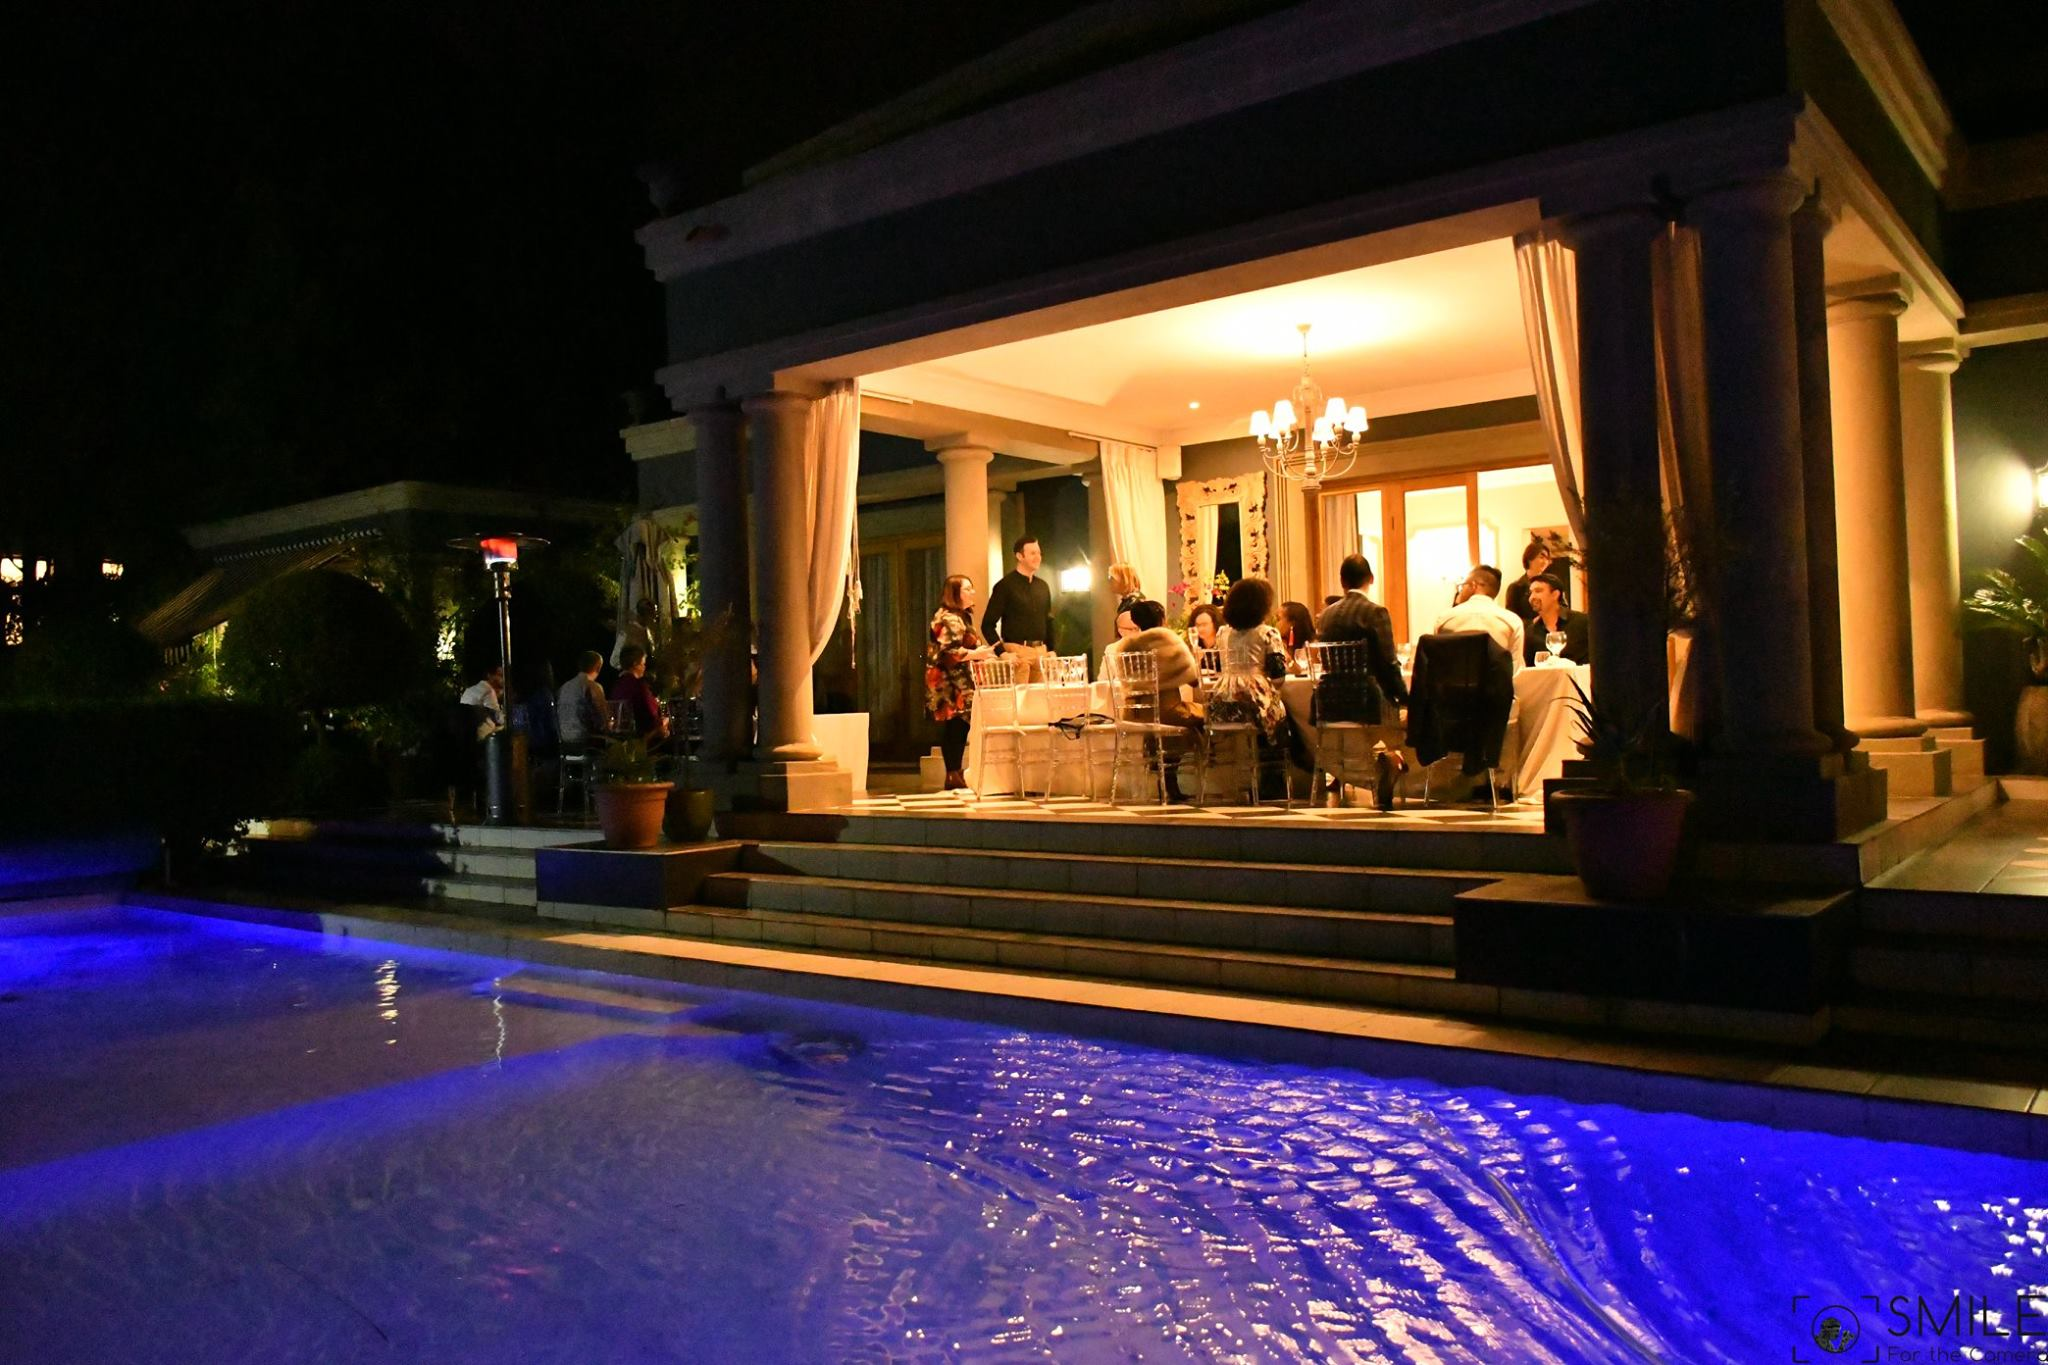 Venue photo at Fairlawns Boutique Hotel and Spa .jpg